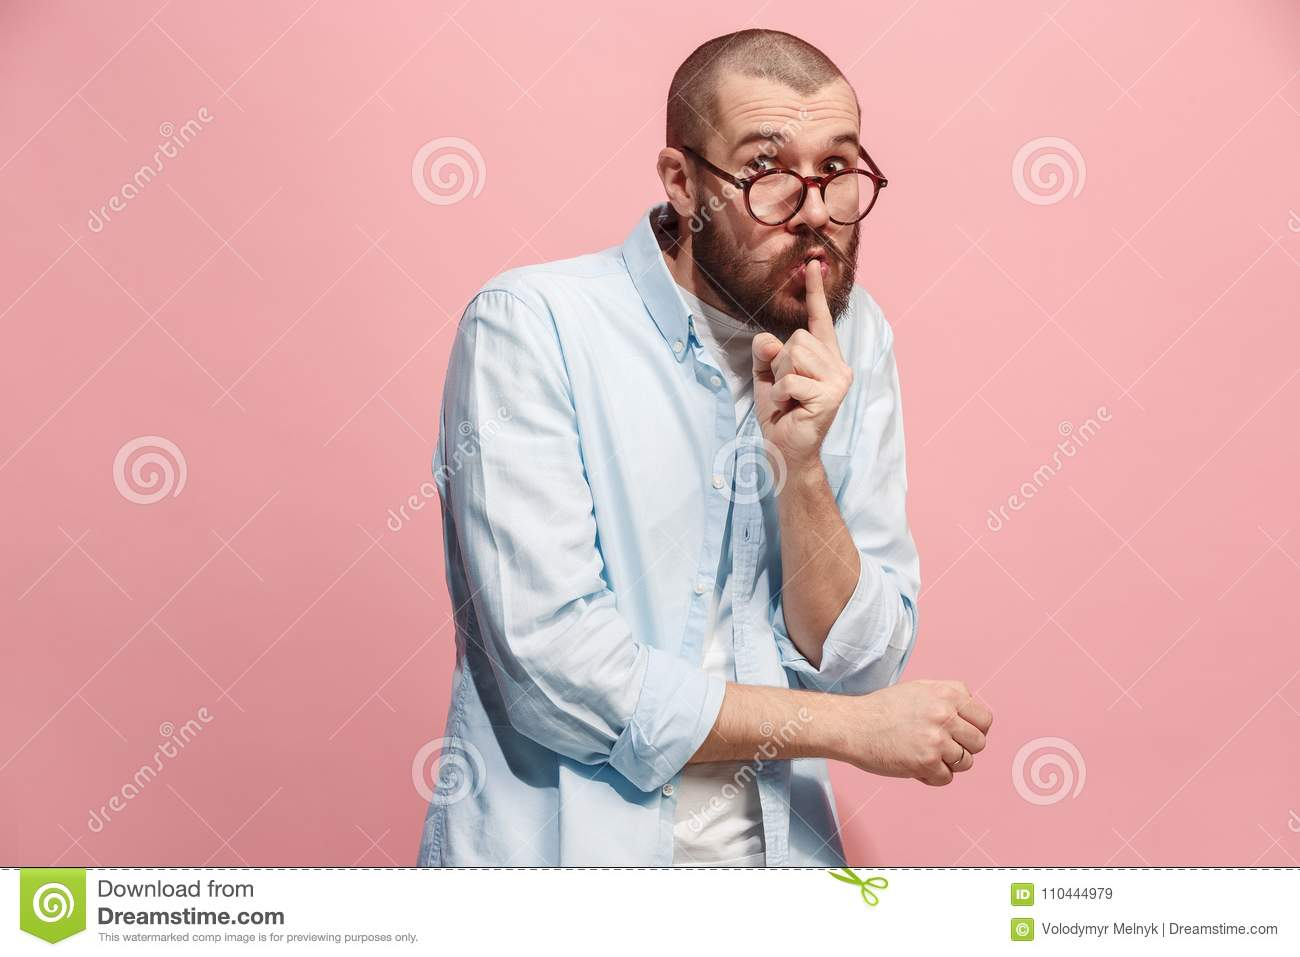 The young man whispering a secret behind her hand over pink background